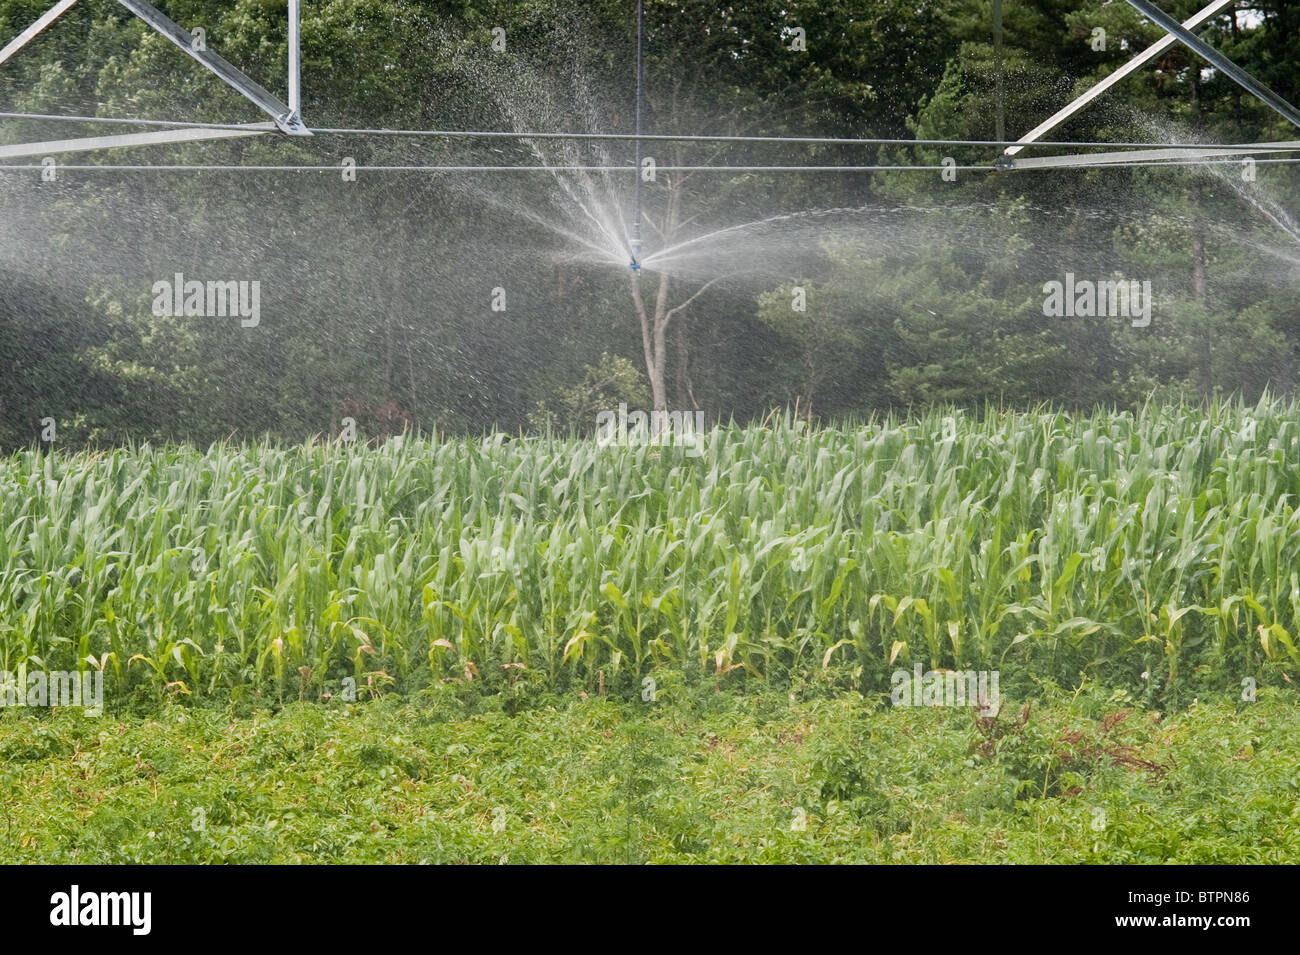 Field of potatoes with pivot irrigation system - Stock Image